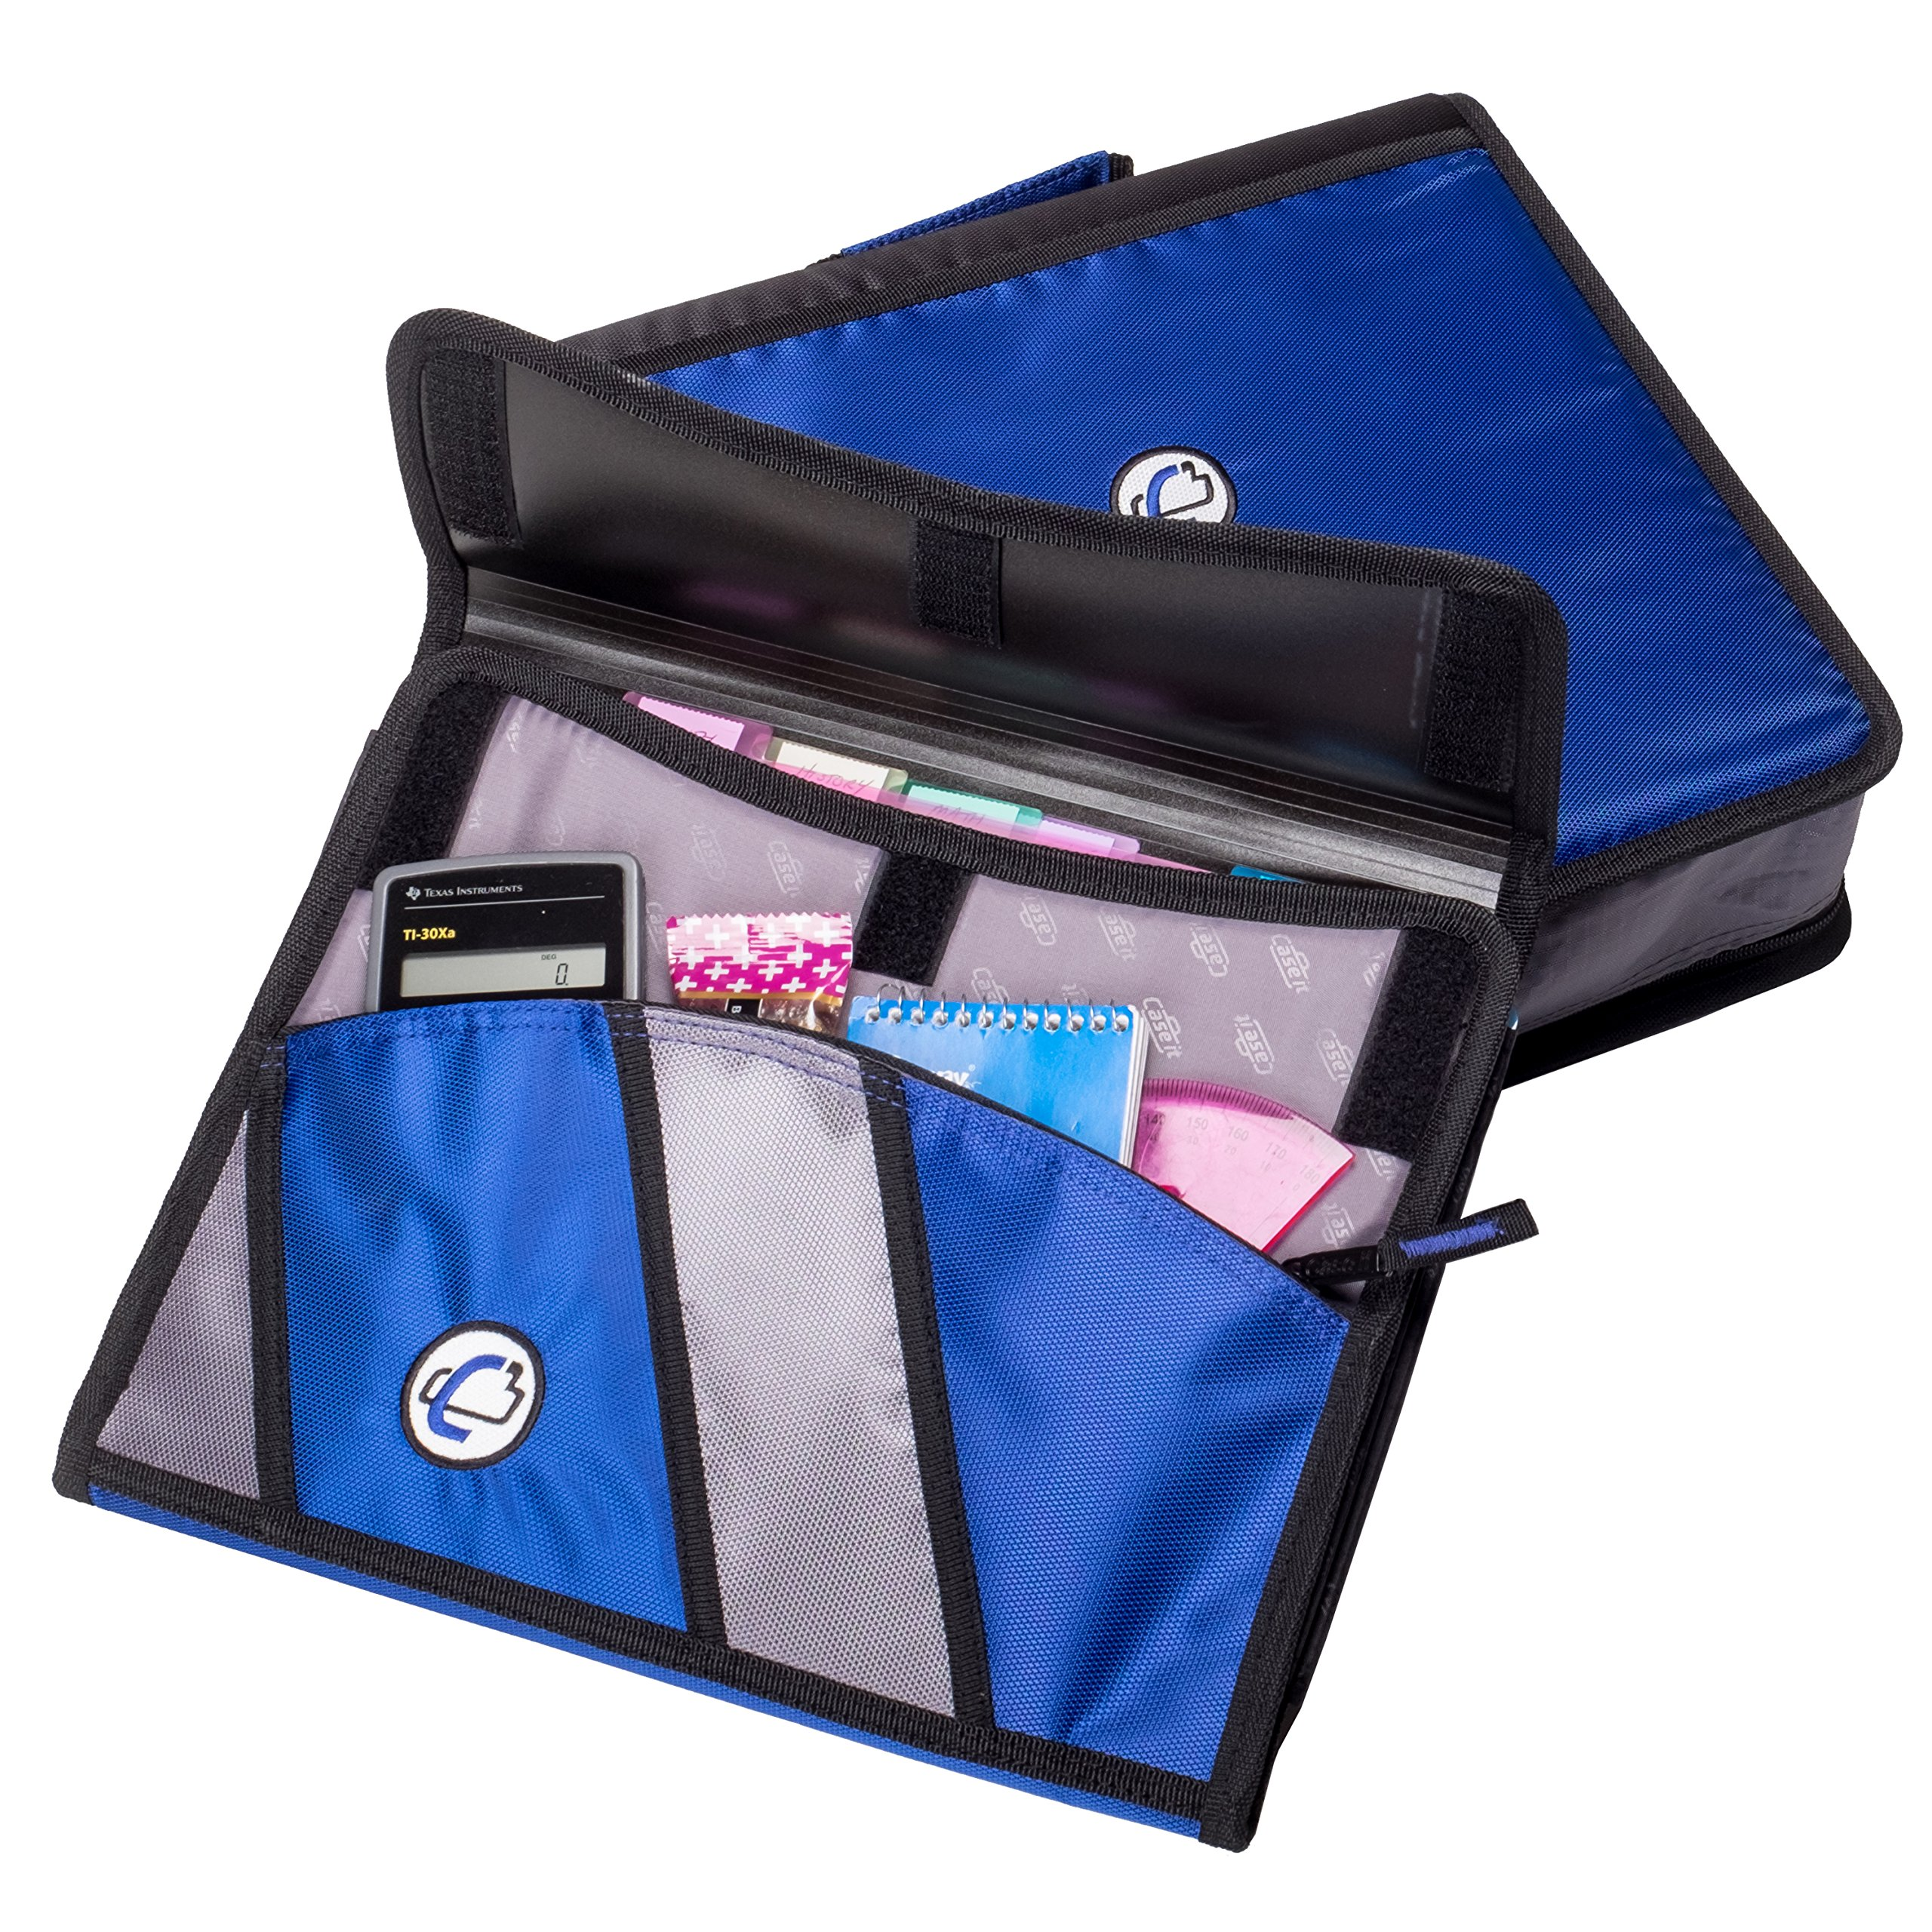 Case-it Sidekick 2-Inch O-Ring Zipper Binder with Removable Tab File, Purple, D-901-PUR by Case-It (Image #3)